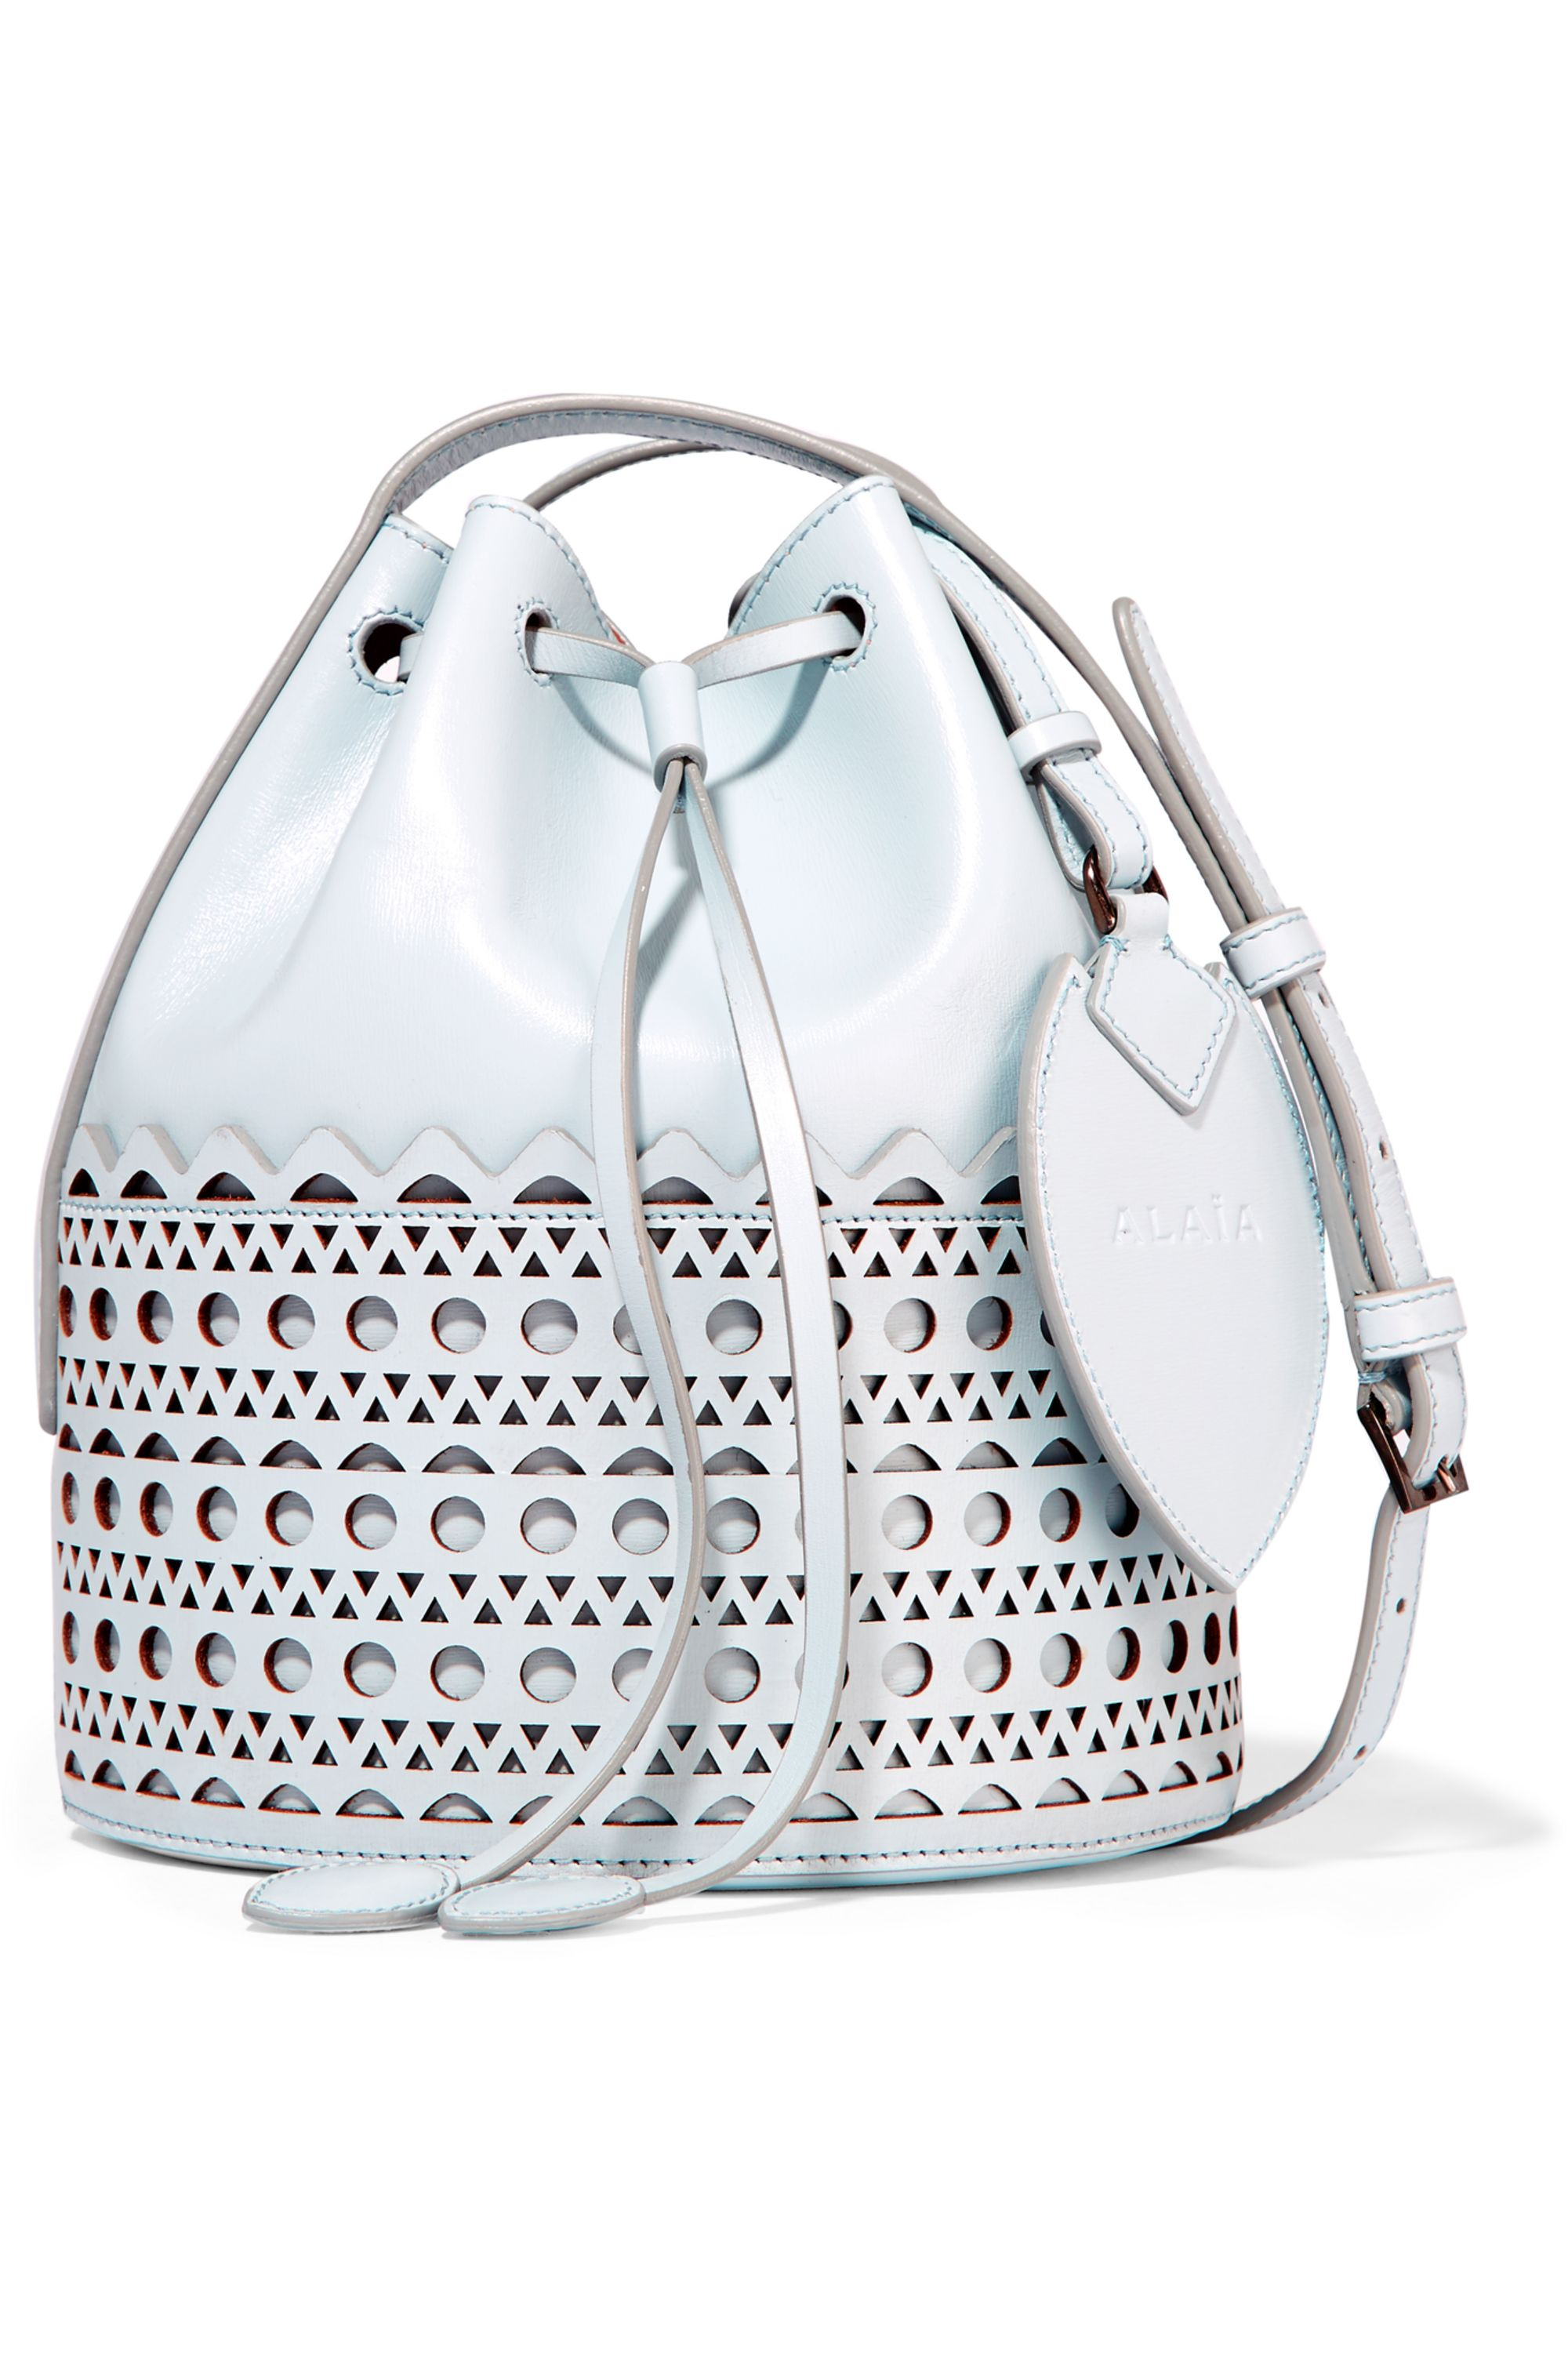 Alaïa Vienne laser-cut leather bucket bag